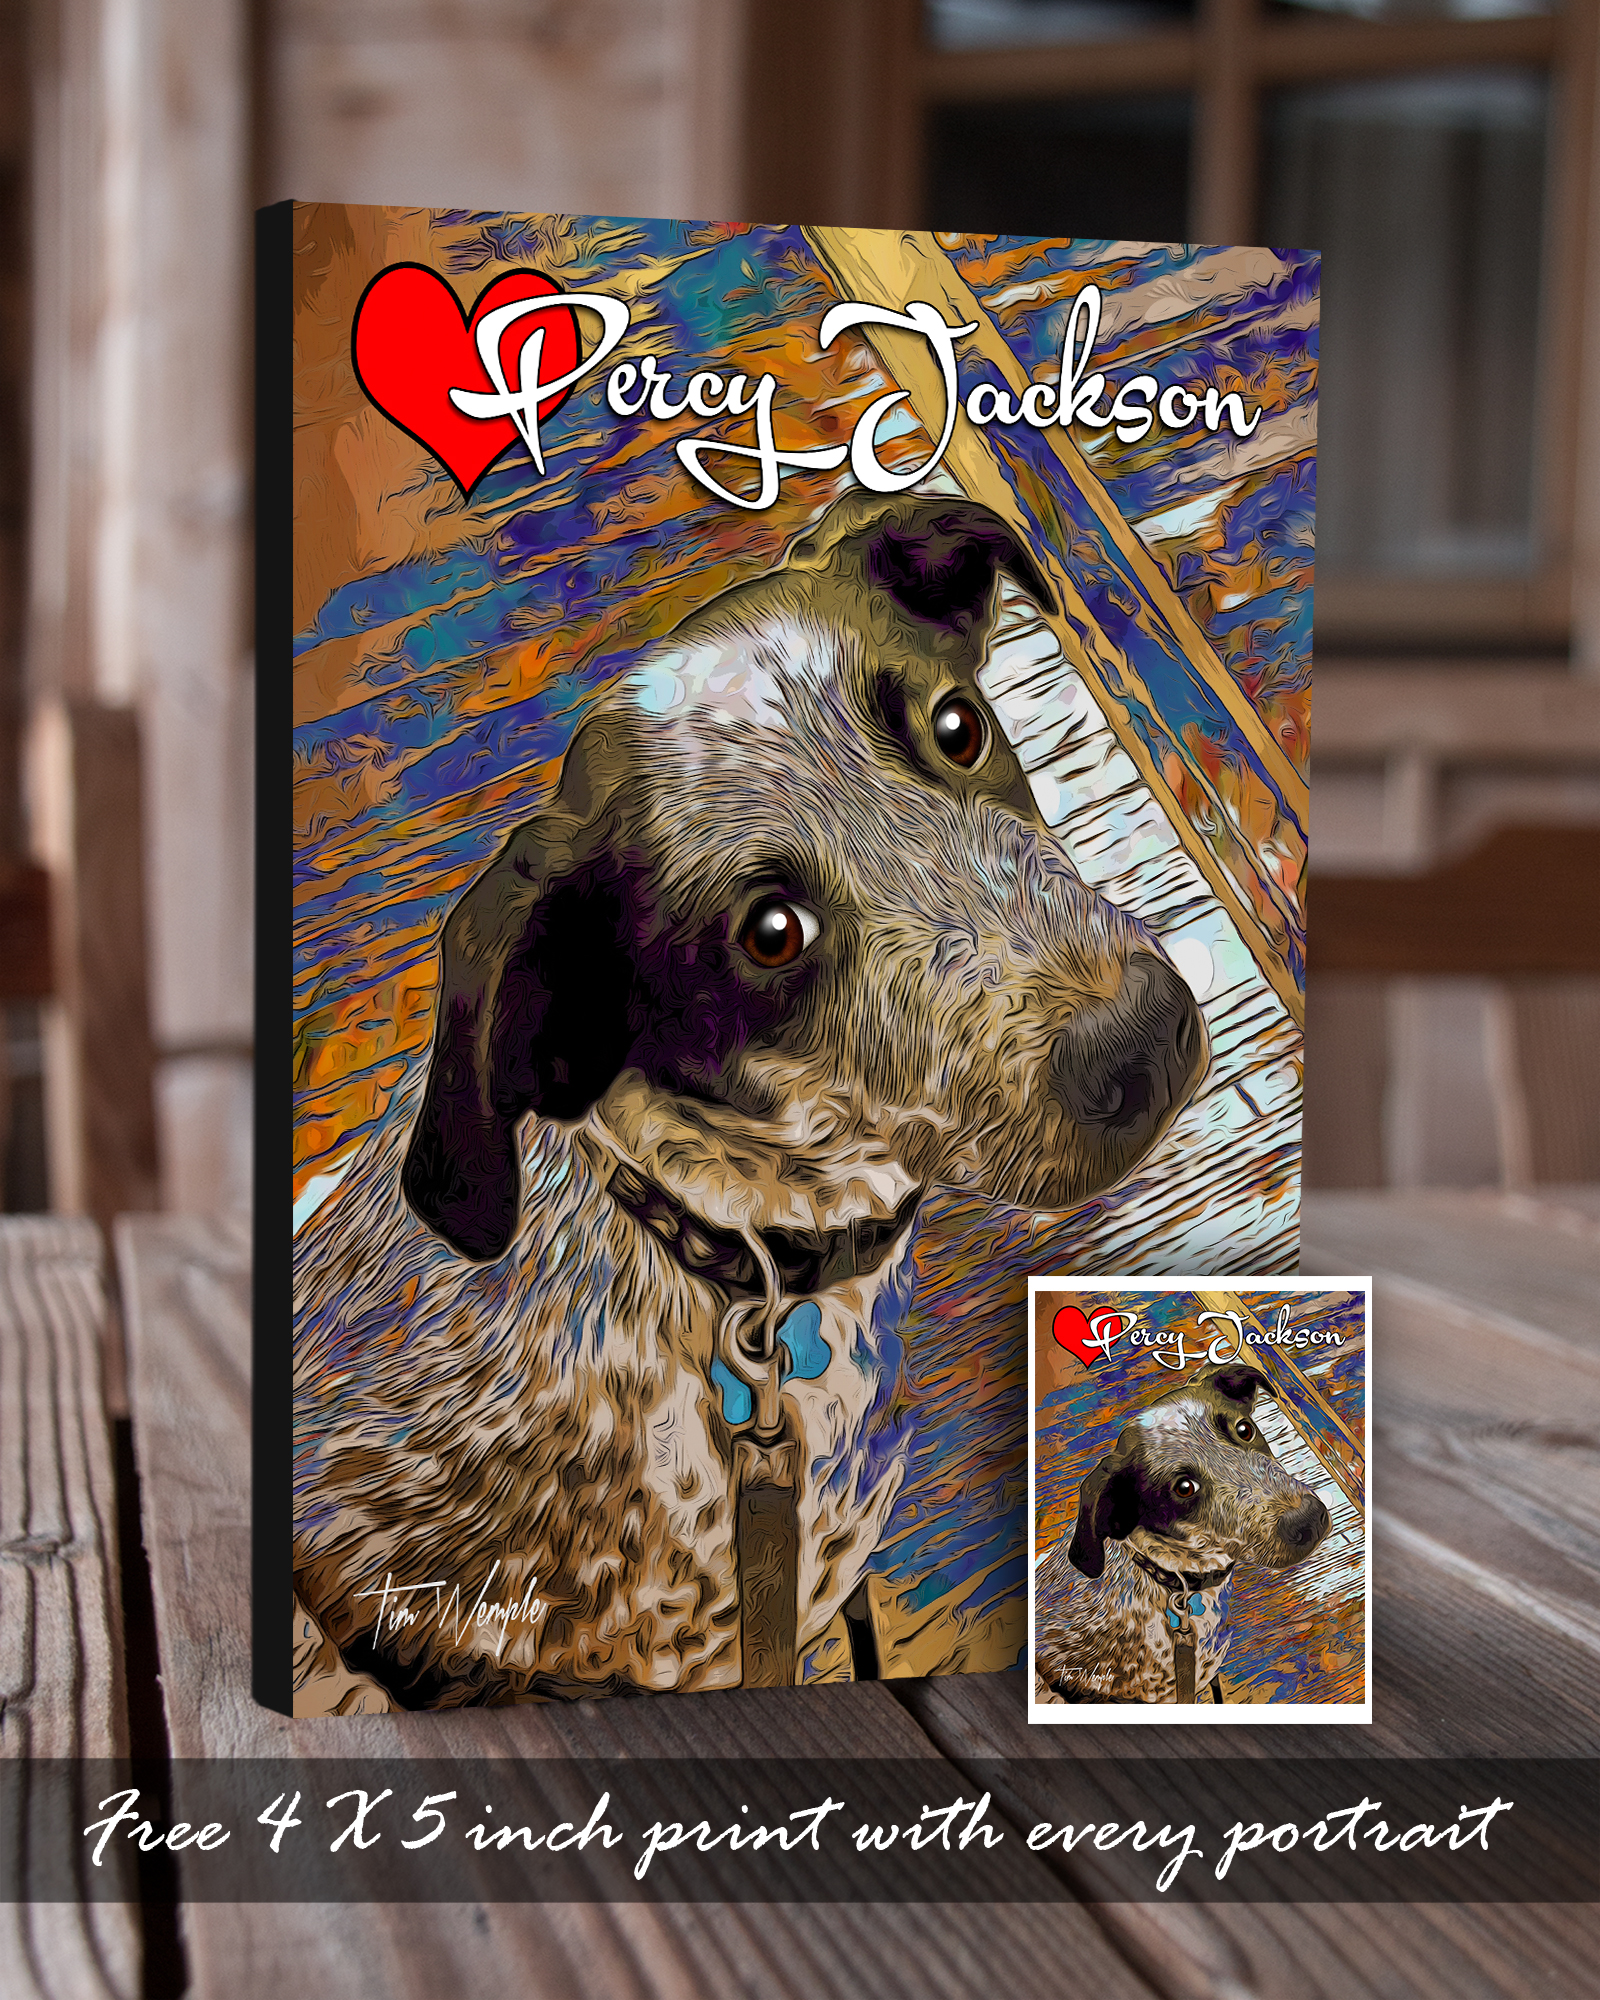 Andy's Paw Prints Pet Portrait Free Print